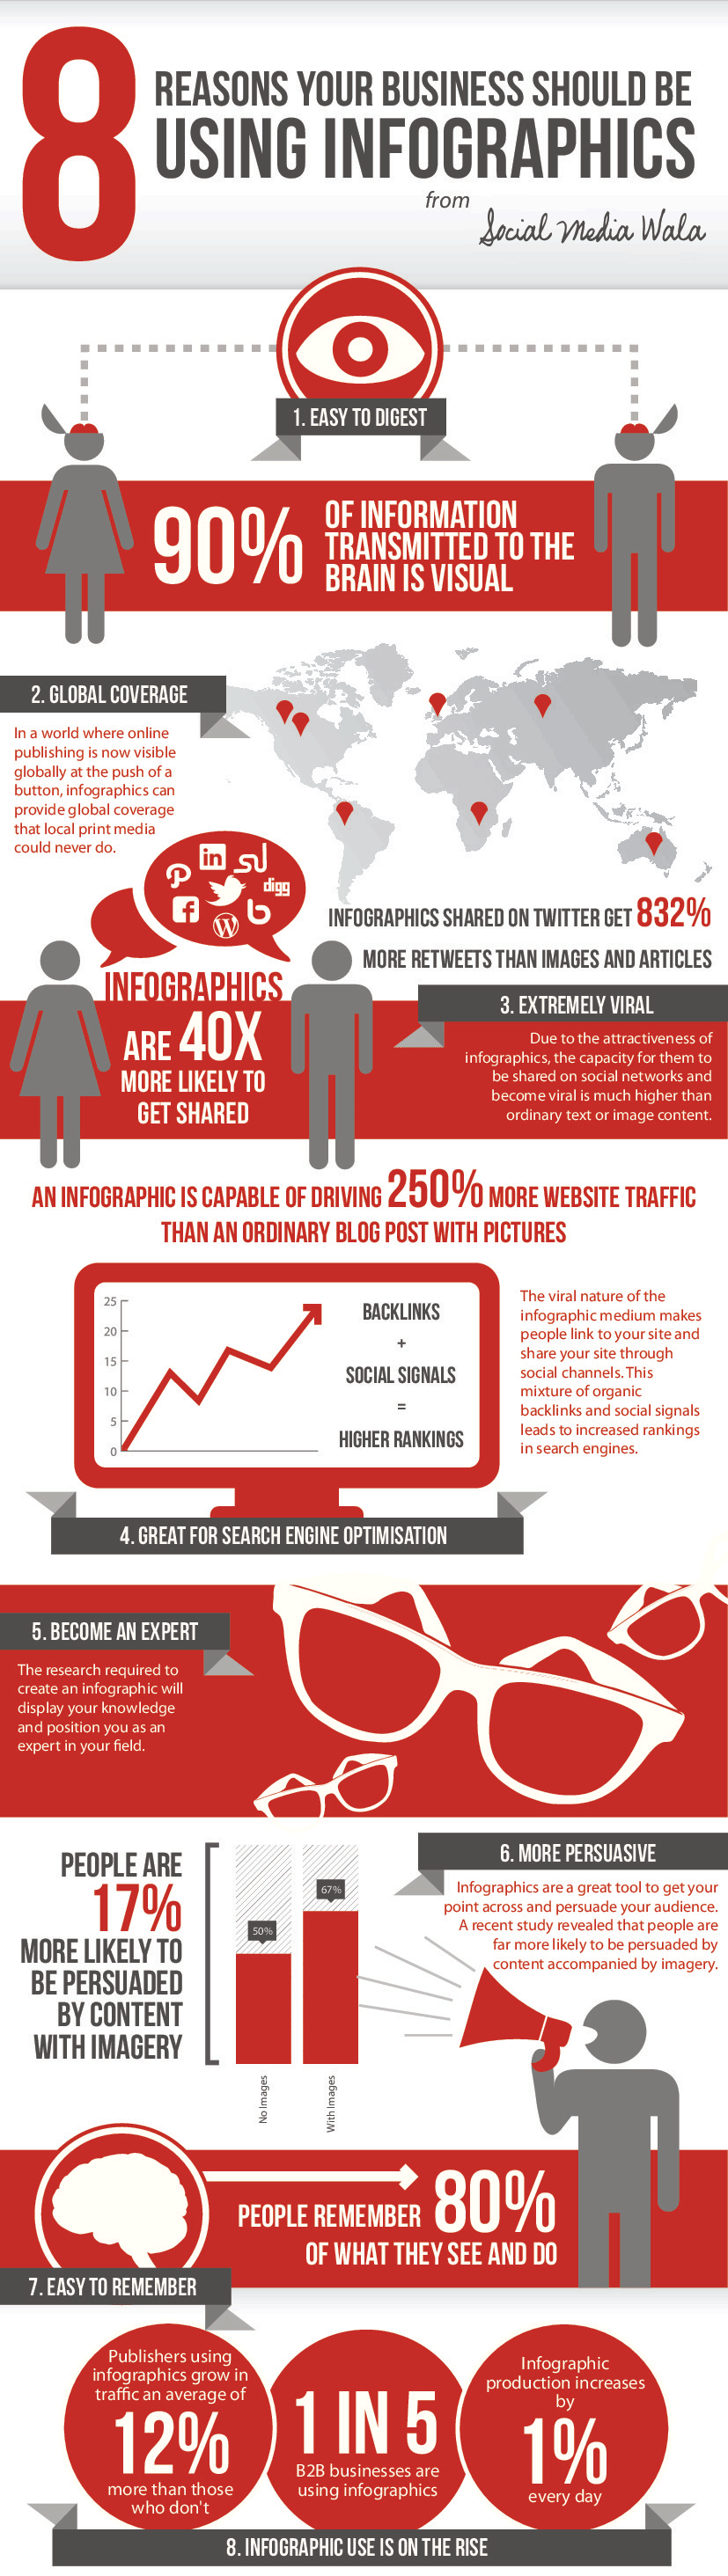 8 reasons to use infographics